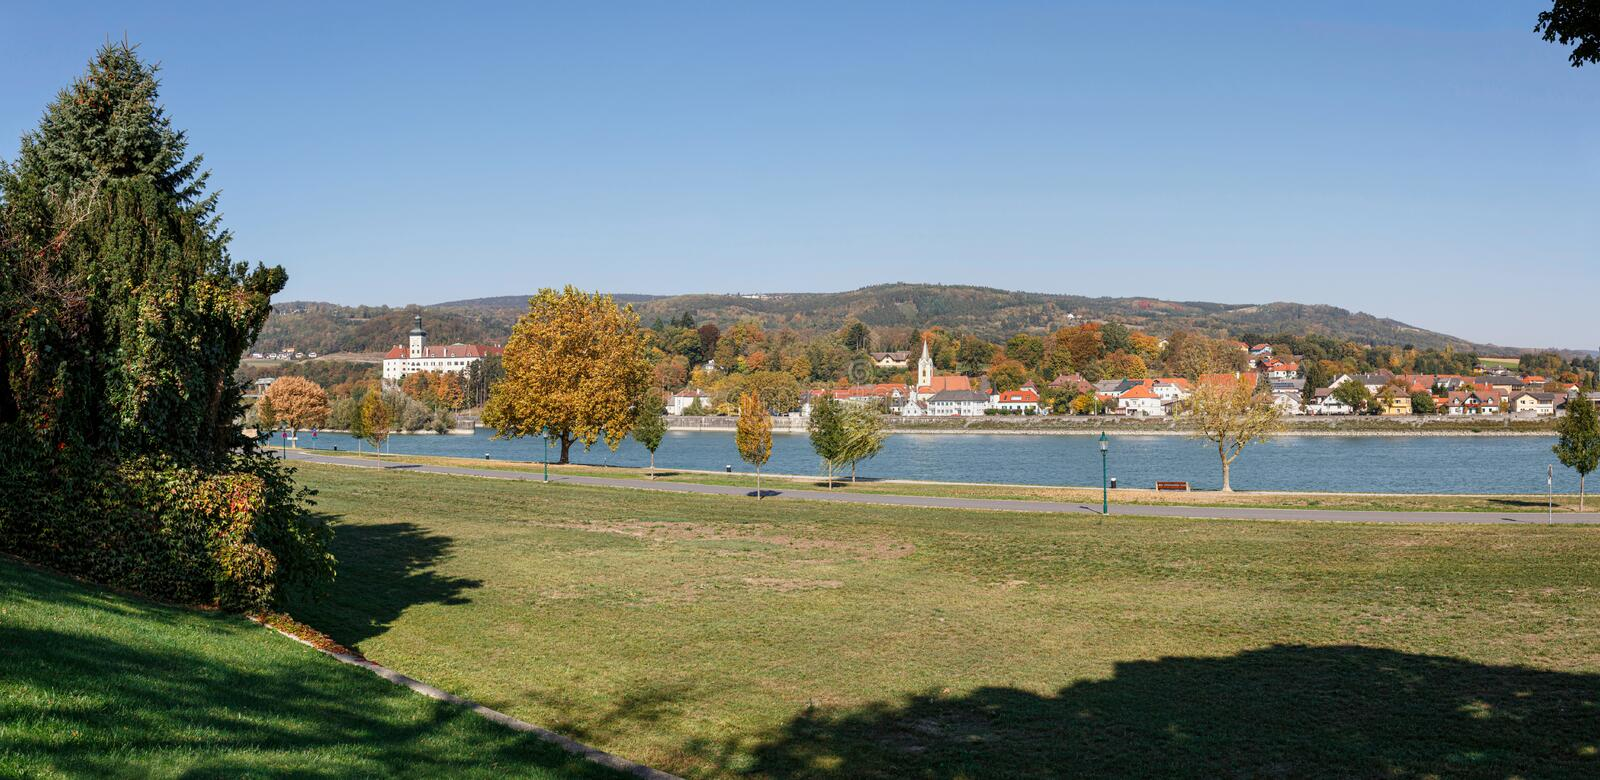 Panoramic view of the town of Persenbeug from the opposite bank of the Danube river. Persenbeug, Lower Austria. stock image